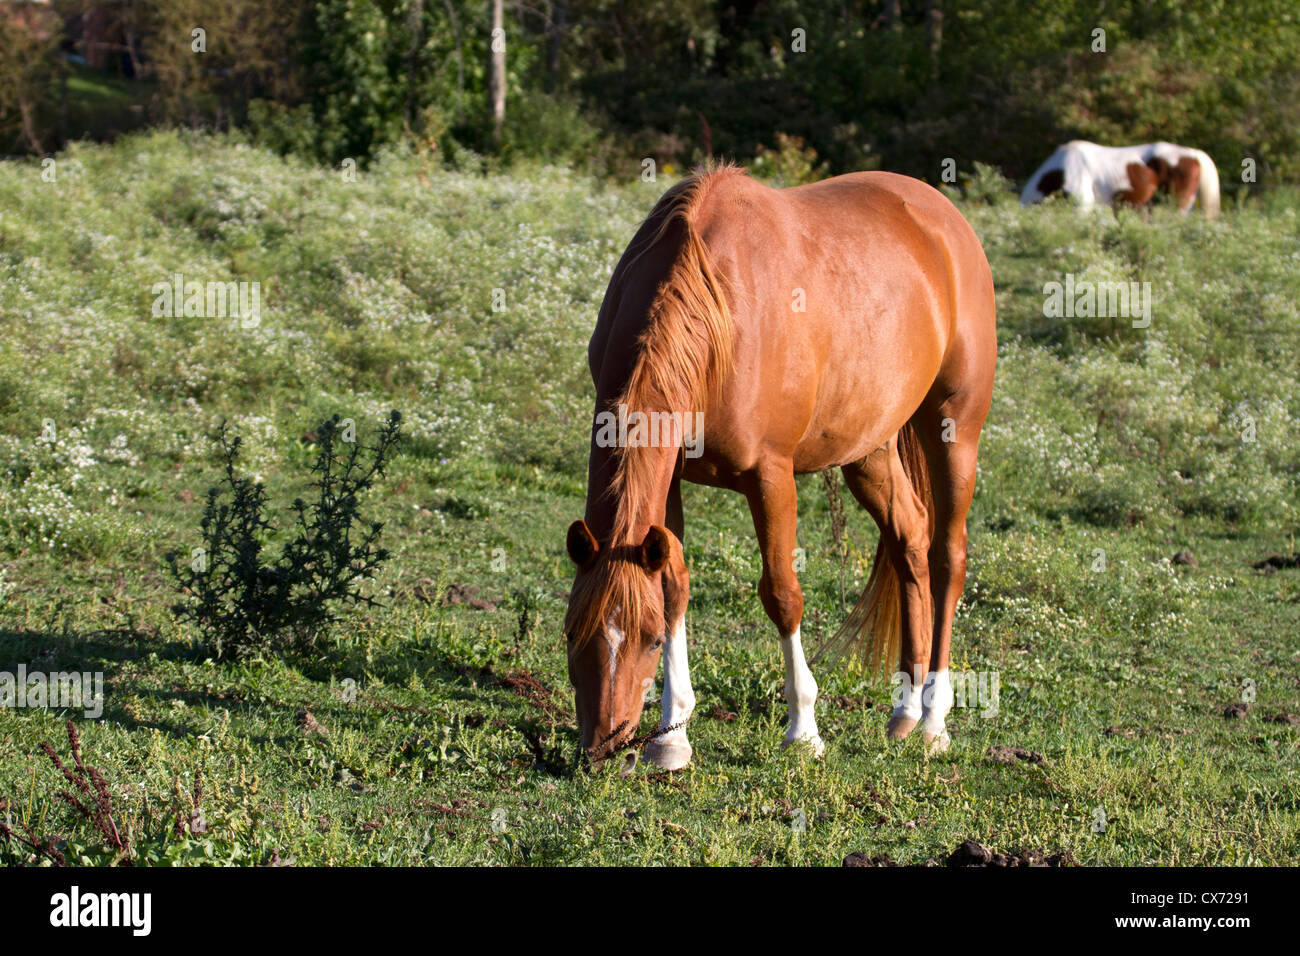 Chestnut horse with white star and 4 white socks grazes in ... - photo#24